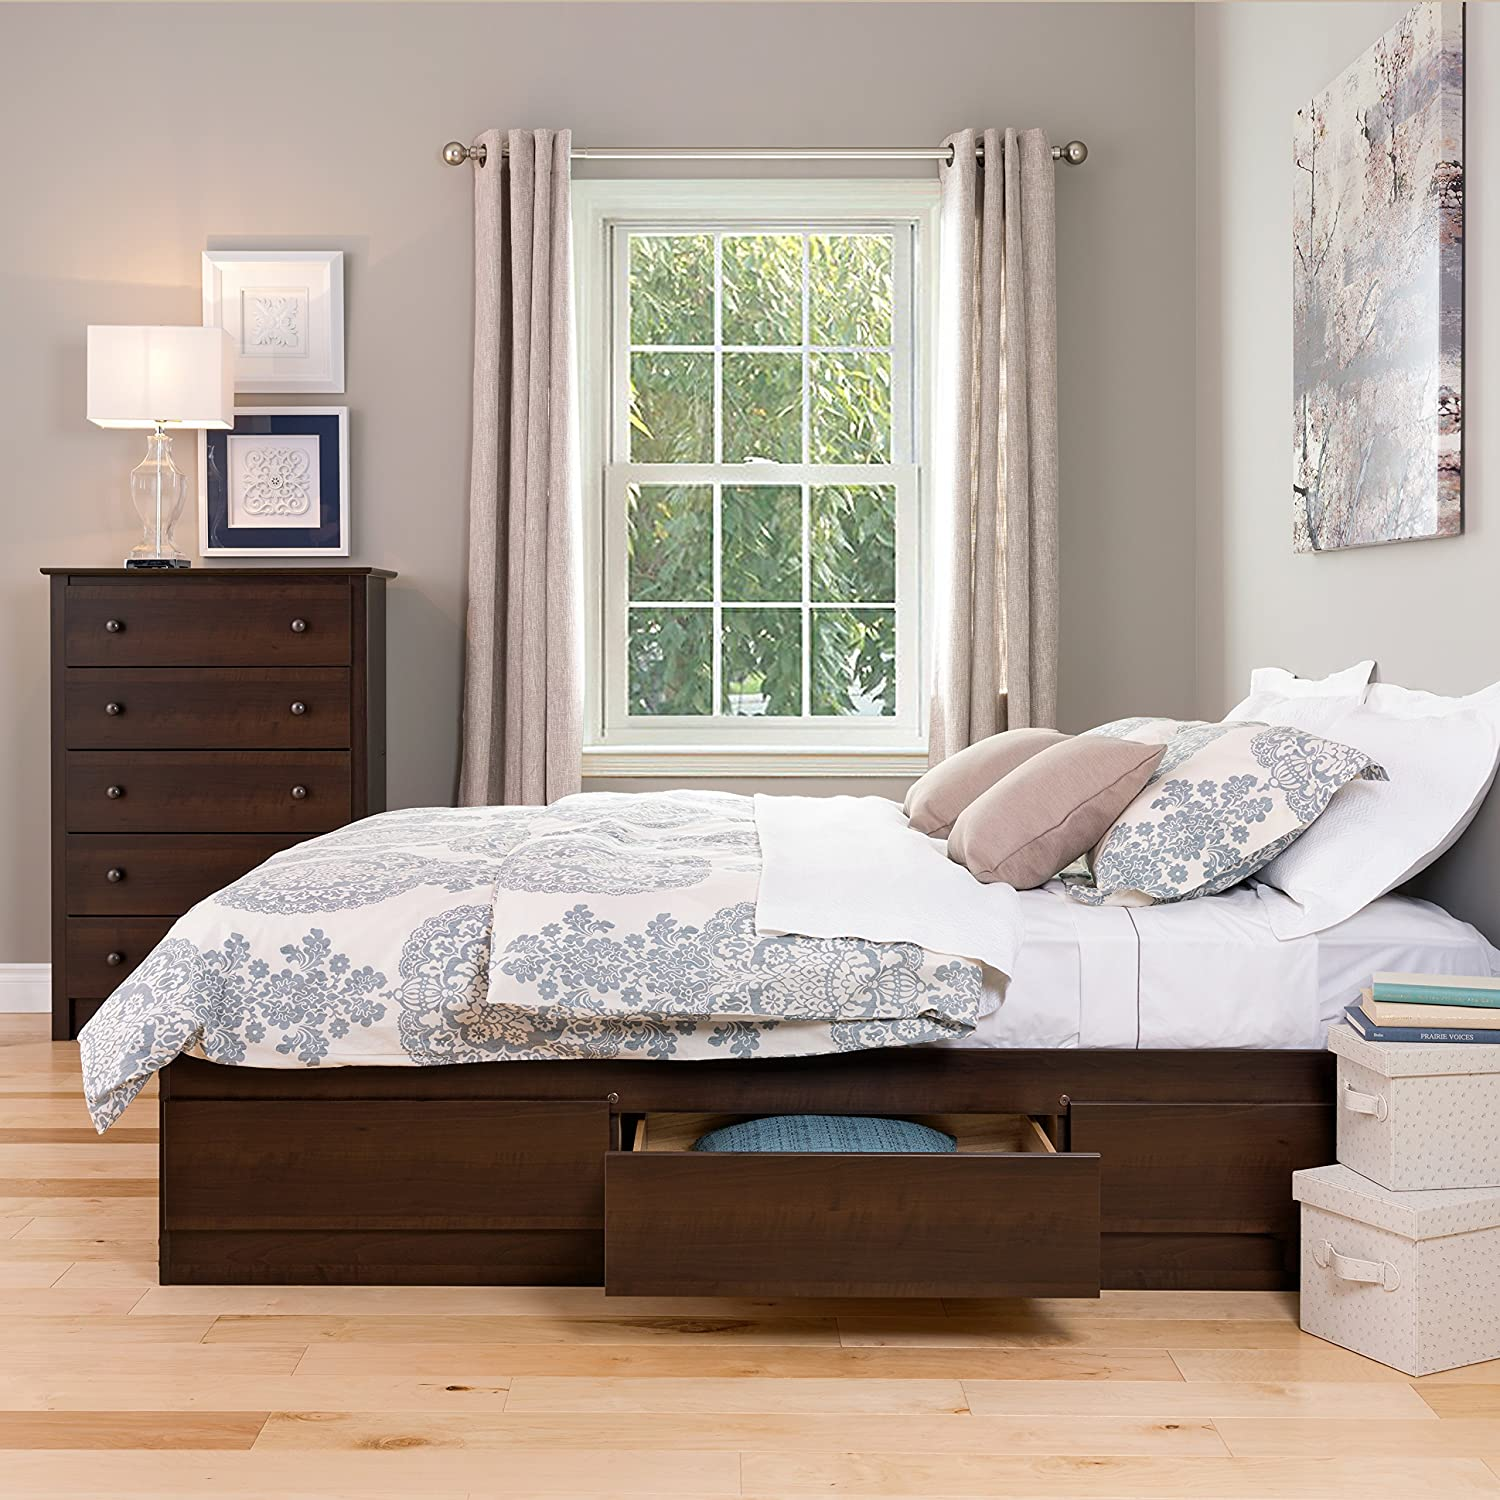 openable with mesh it bed design storage or is drawers platform elegant better bedroom interior throughout beds queen